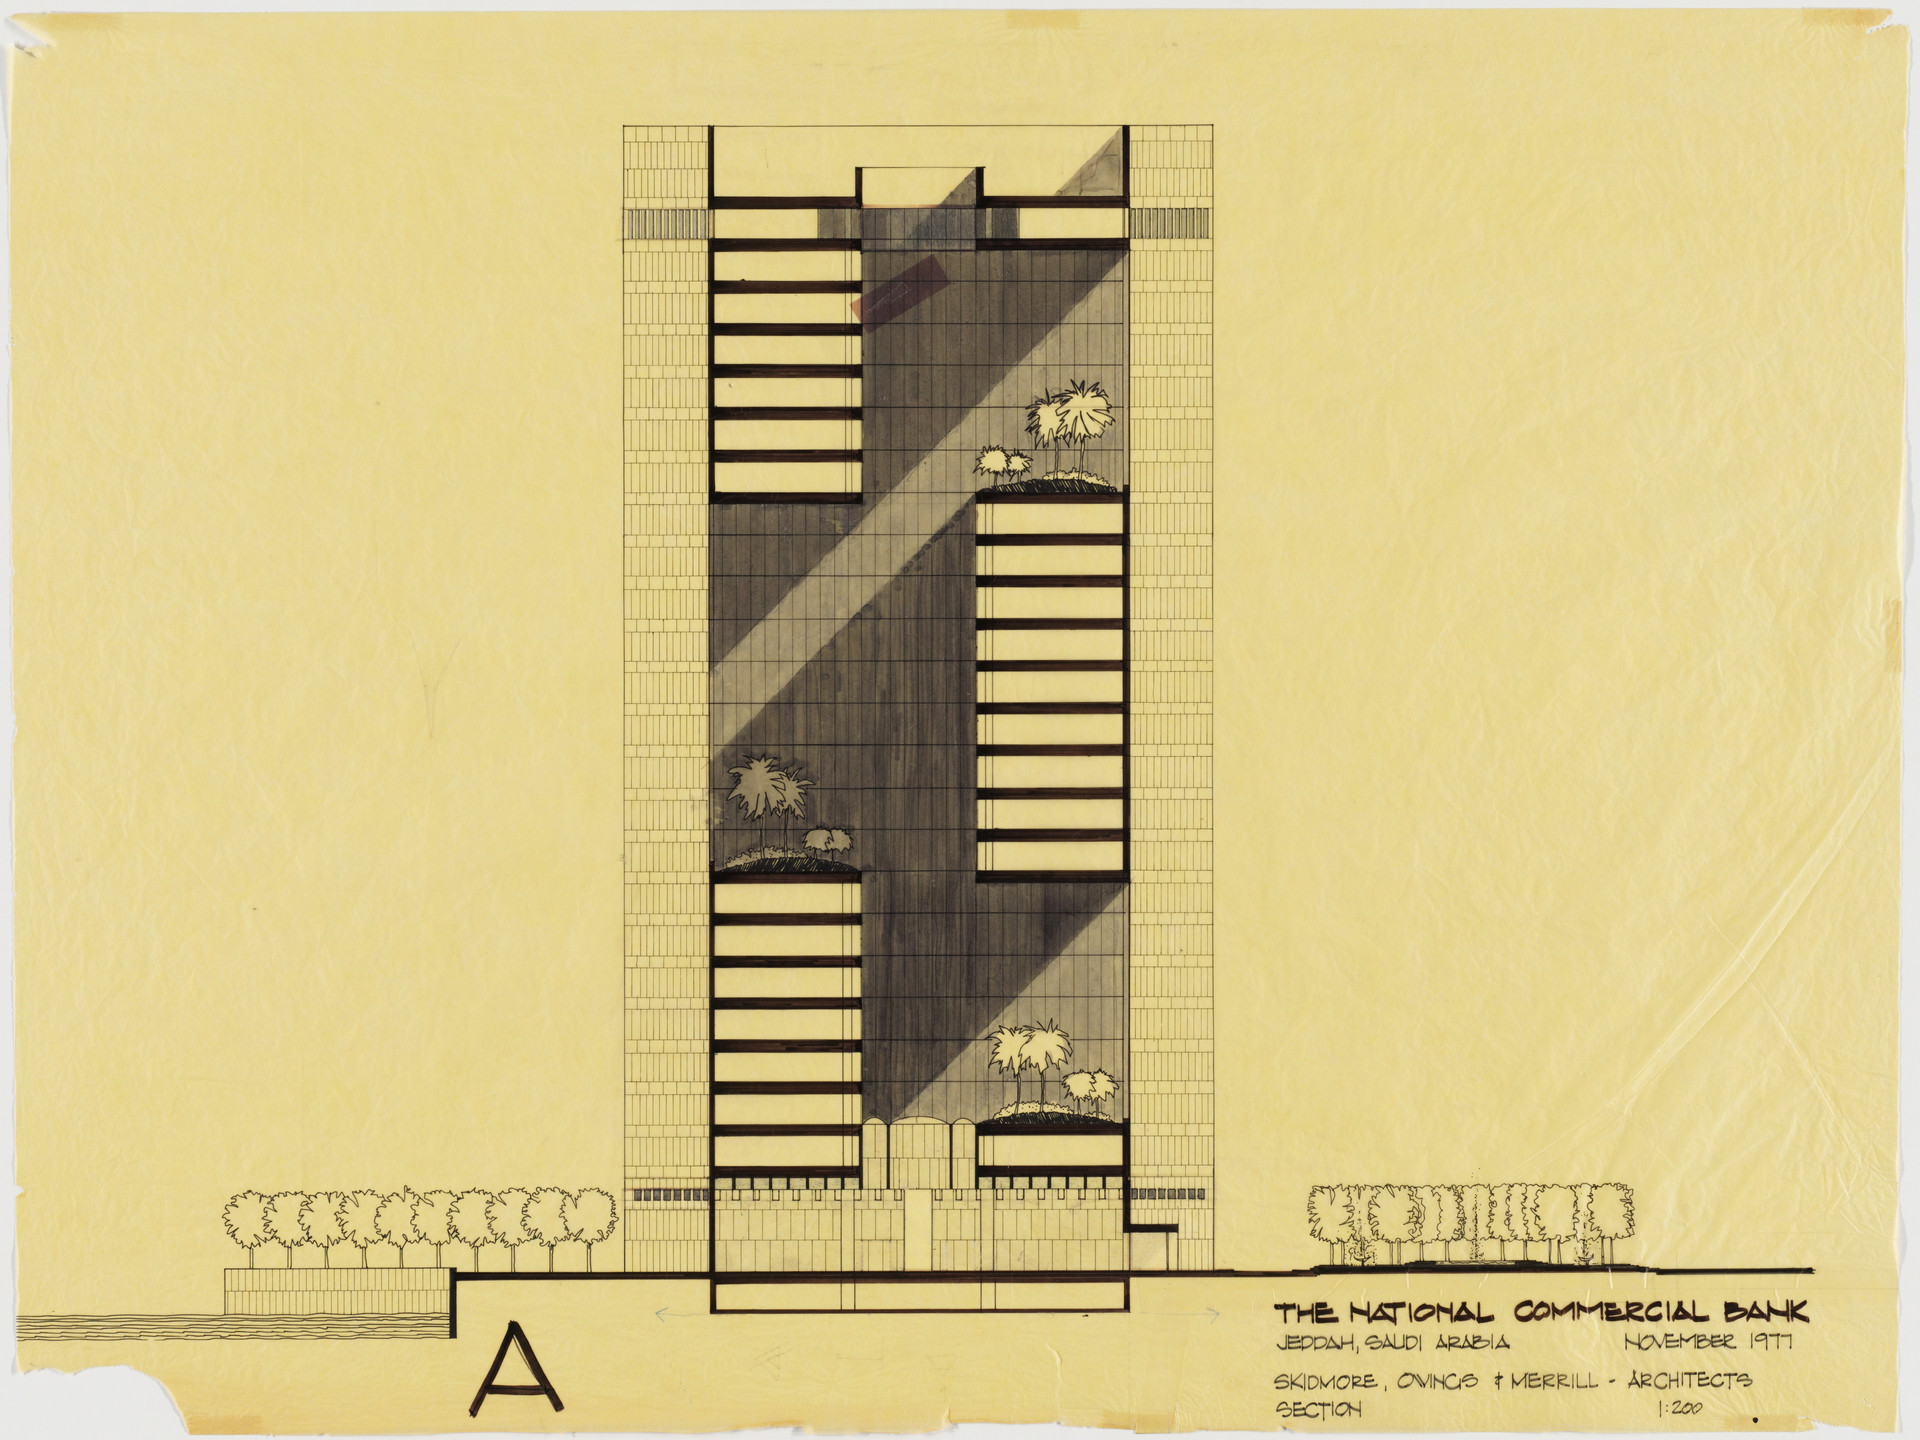 Skidmore Owings & Merrill, Gordon Bunshaft. National Commercial Bank, Jeddah, Saudi Arabia (Section). 1977